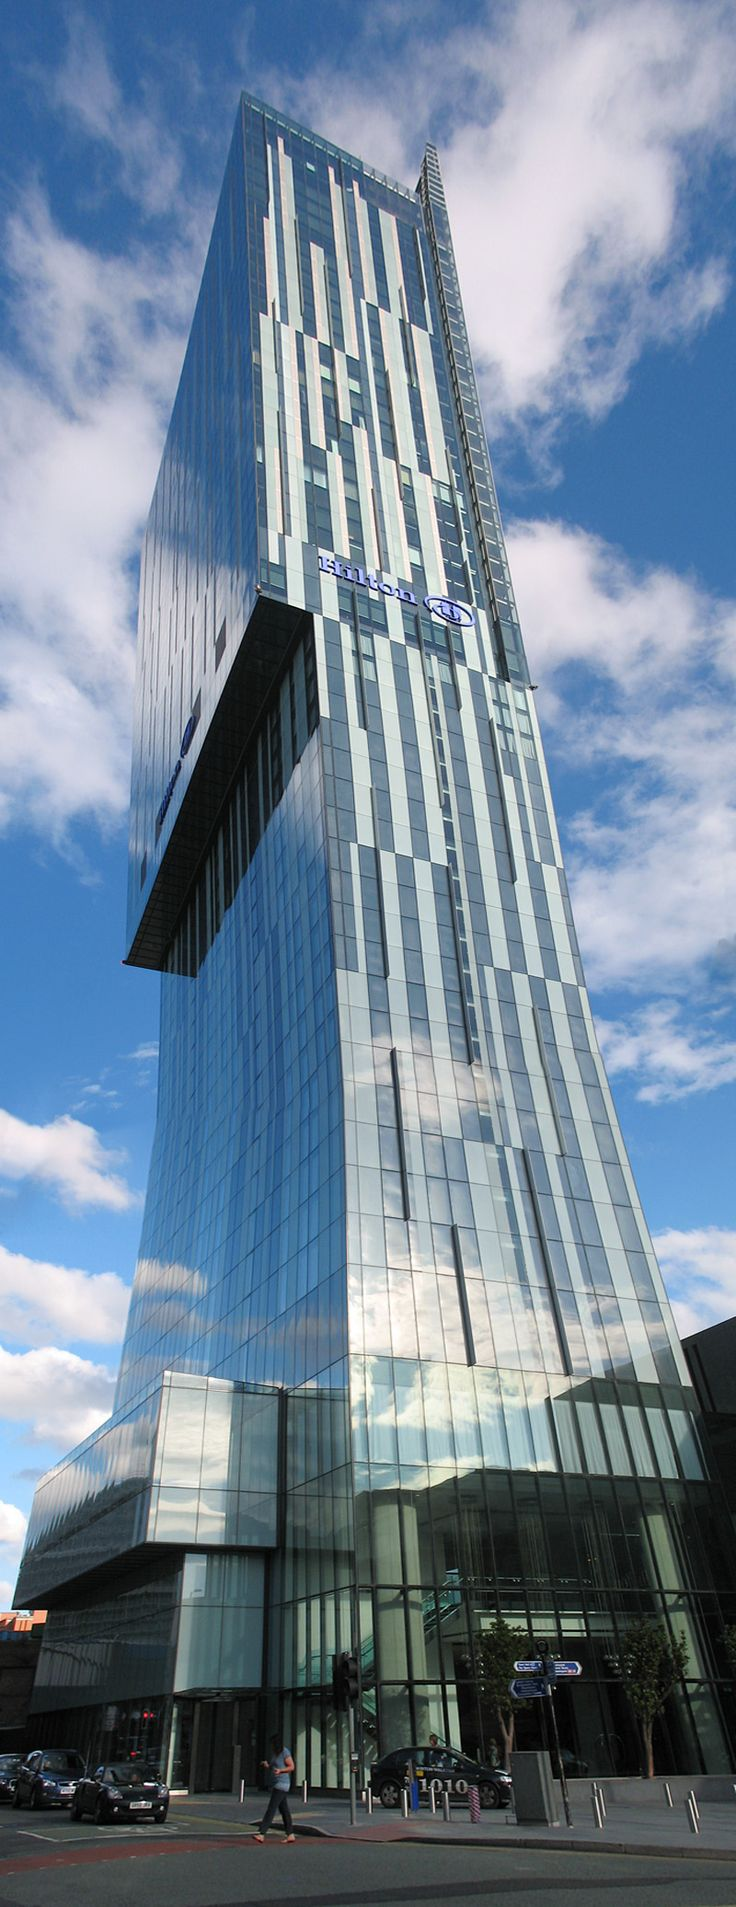 The Beetham Tower (Hilton Hotel) Manchester, England. The tallest building in Manchester at 168m. Great views from the skybar Cloud 23. Who would like to take me? Anyone?